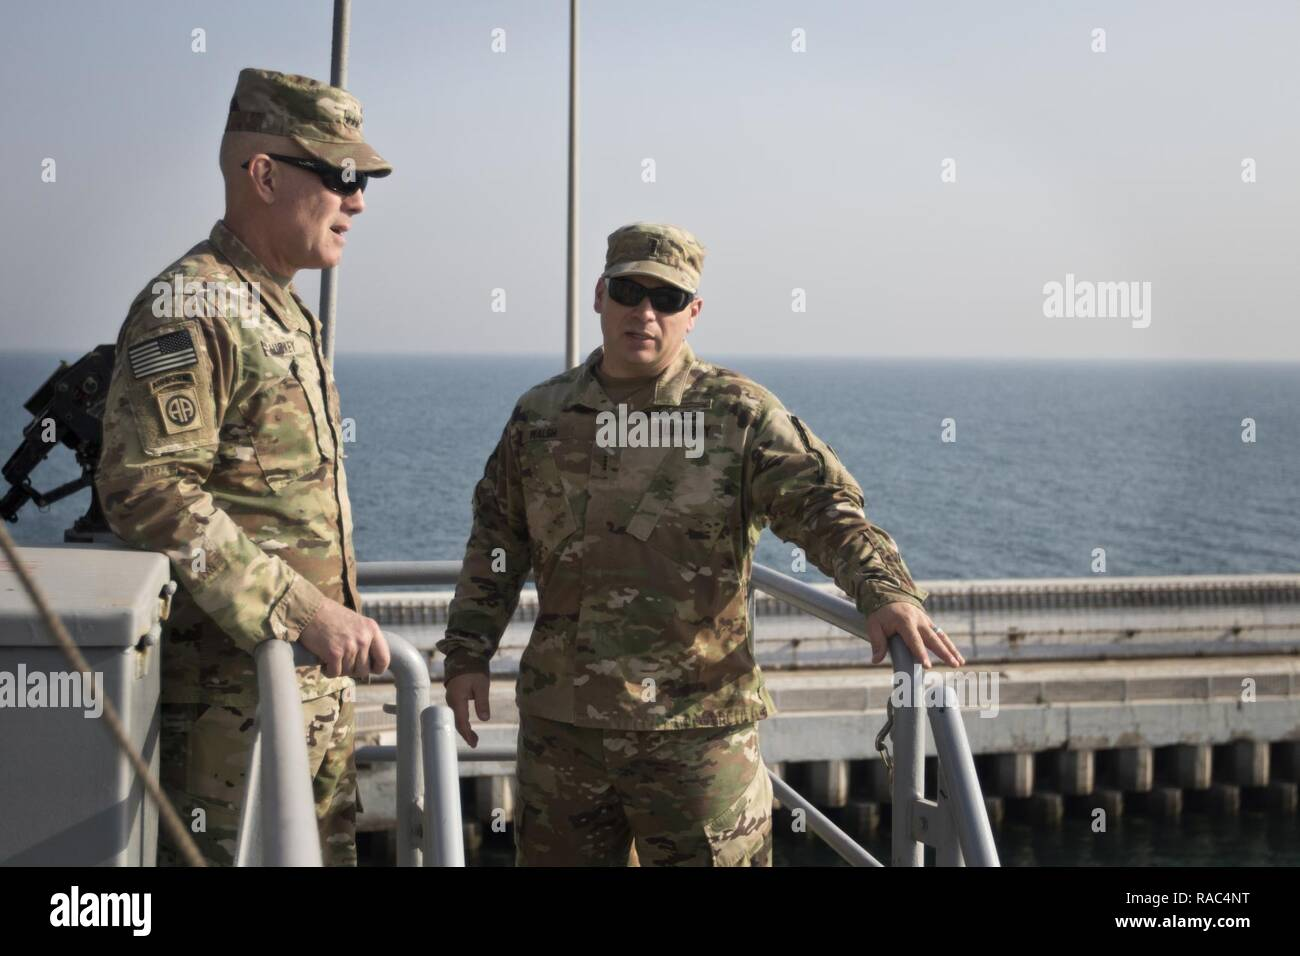 """U.S. Army Reserve Commanding General Lt. Gen. Charles D. Luckey tours the LSV-5 """"MG Charles P. Gross"""" during a tour of the Kuwait Naval Base and its capabilities in Kuwait, Jan. 10, 2017. - Stock Image"""